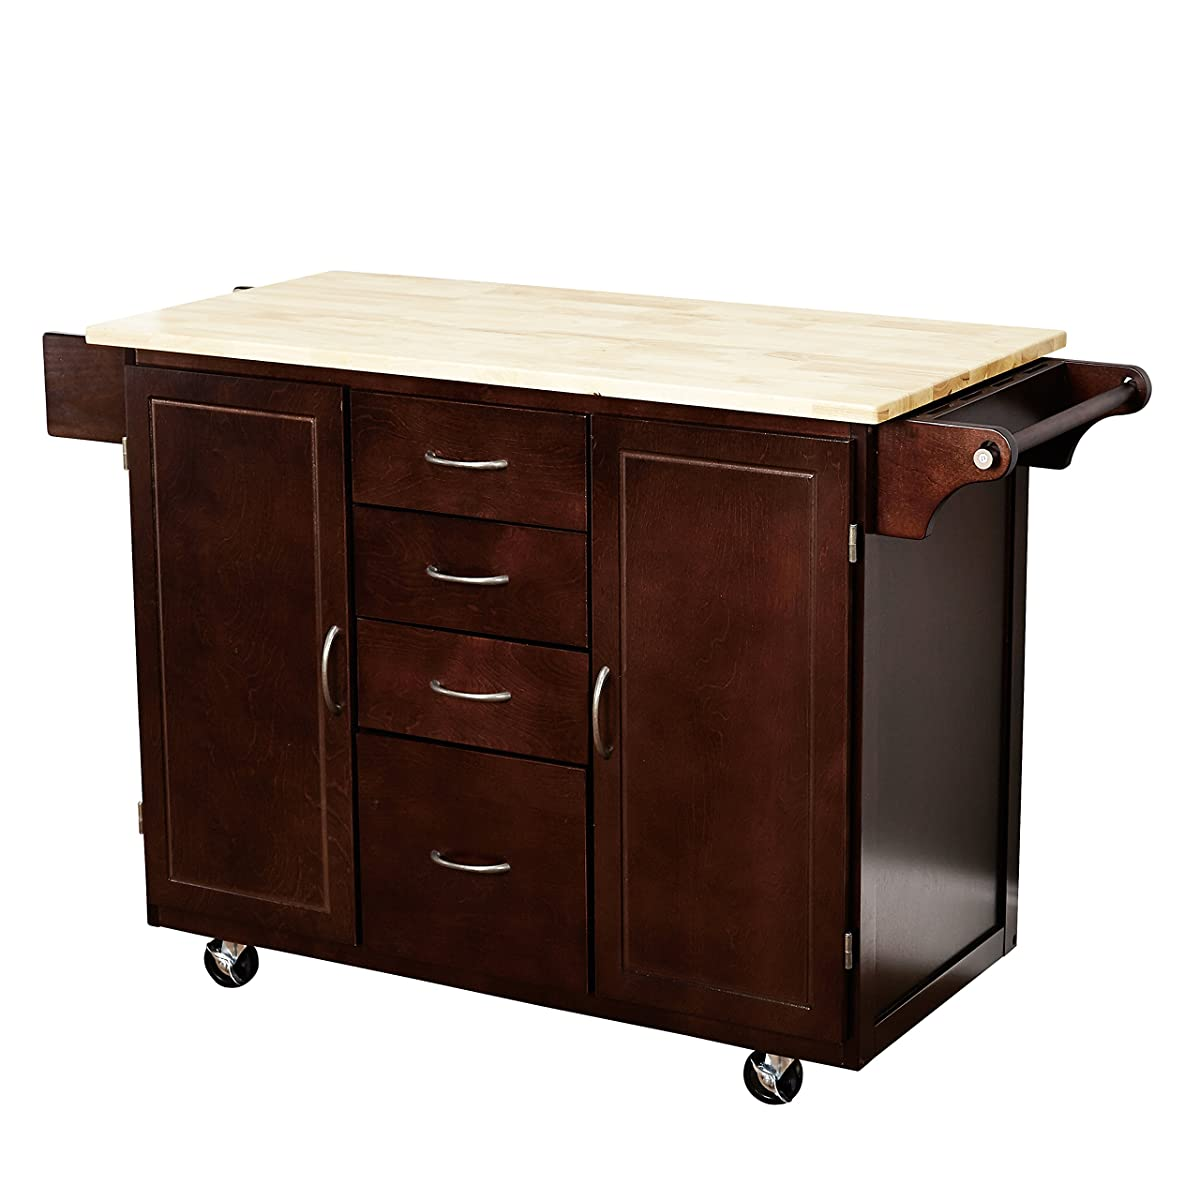 target marketing systems two toned country cottage rolling kitchen cart with 4 drawers 2 cabinets - Kitchen Cart Target